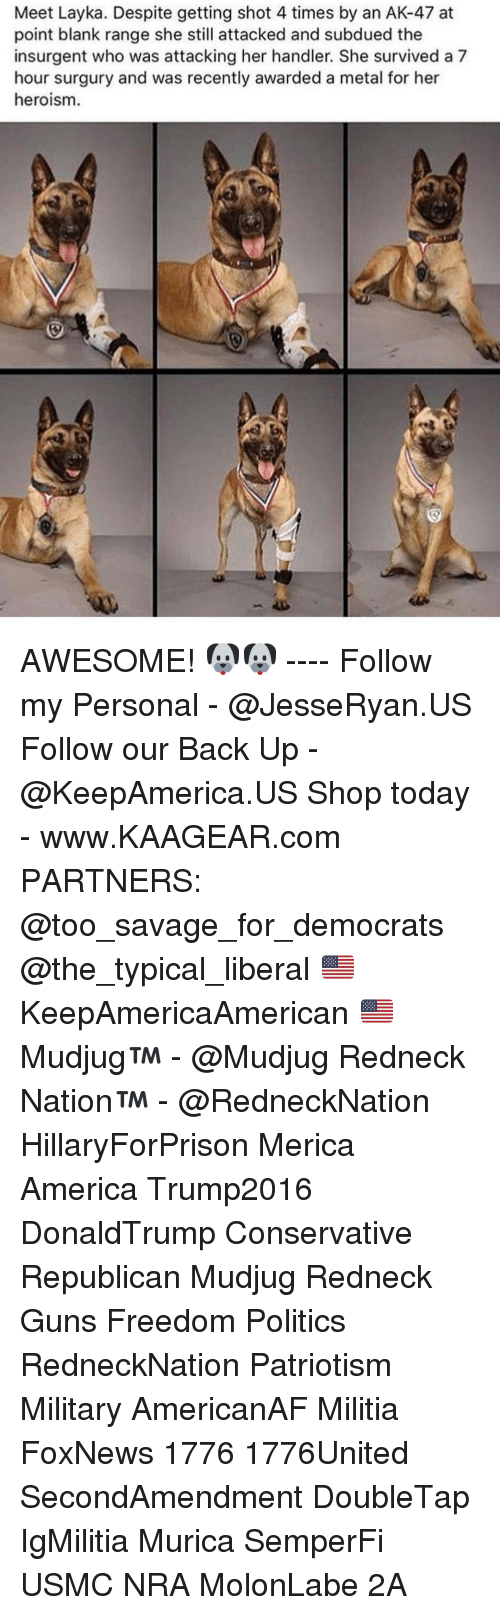 America, Guns, and Memes: Meet Layka. Despite getting shot 4 times by an AK-47 at  point blank range she still attacked and subdued the  insurgent who was attacking her handler. She survived a 7  hour surgury and was recently awarded a metal for her  heroism AWESOME! 🐶🐶 ---- Follow my Personal - @JesseRyan.US Follow our Back Up - @KeepAmerica.US Shop today - www.KAAGEAR.com PARTNERS: @too_savage_for_democrats @the_typical_liberal 🇺🇸 KeepAmericaAmerican 🇺🇸 Mudjug™ - @Mudjug Redneck Nation™ - @RedneckNation HillaryForPrison Merica America Trump2016 DonaldTrump Conservative Republican Mudjug Redneck Guns Freedom Politics RedneckNation Patriotism Military AmericanAF Militia FoxNews 1776 1776United SecondAmendment DoubleTap IgMilitia Murica SemperFi USMC NRA MolonLabe 2A